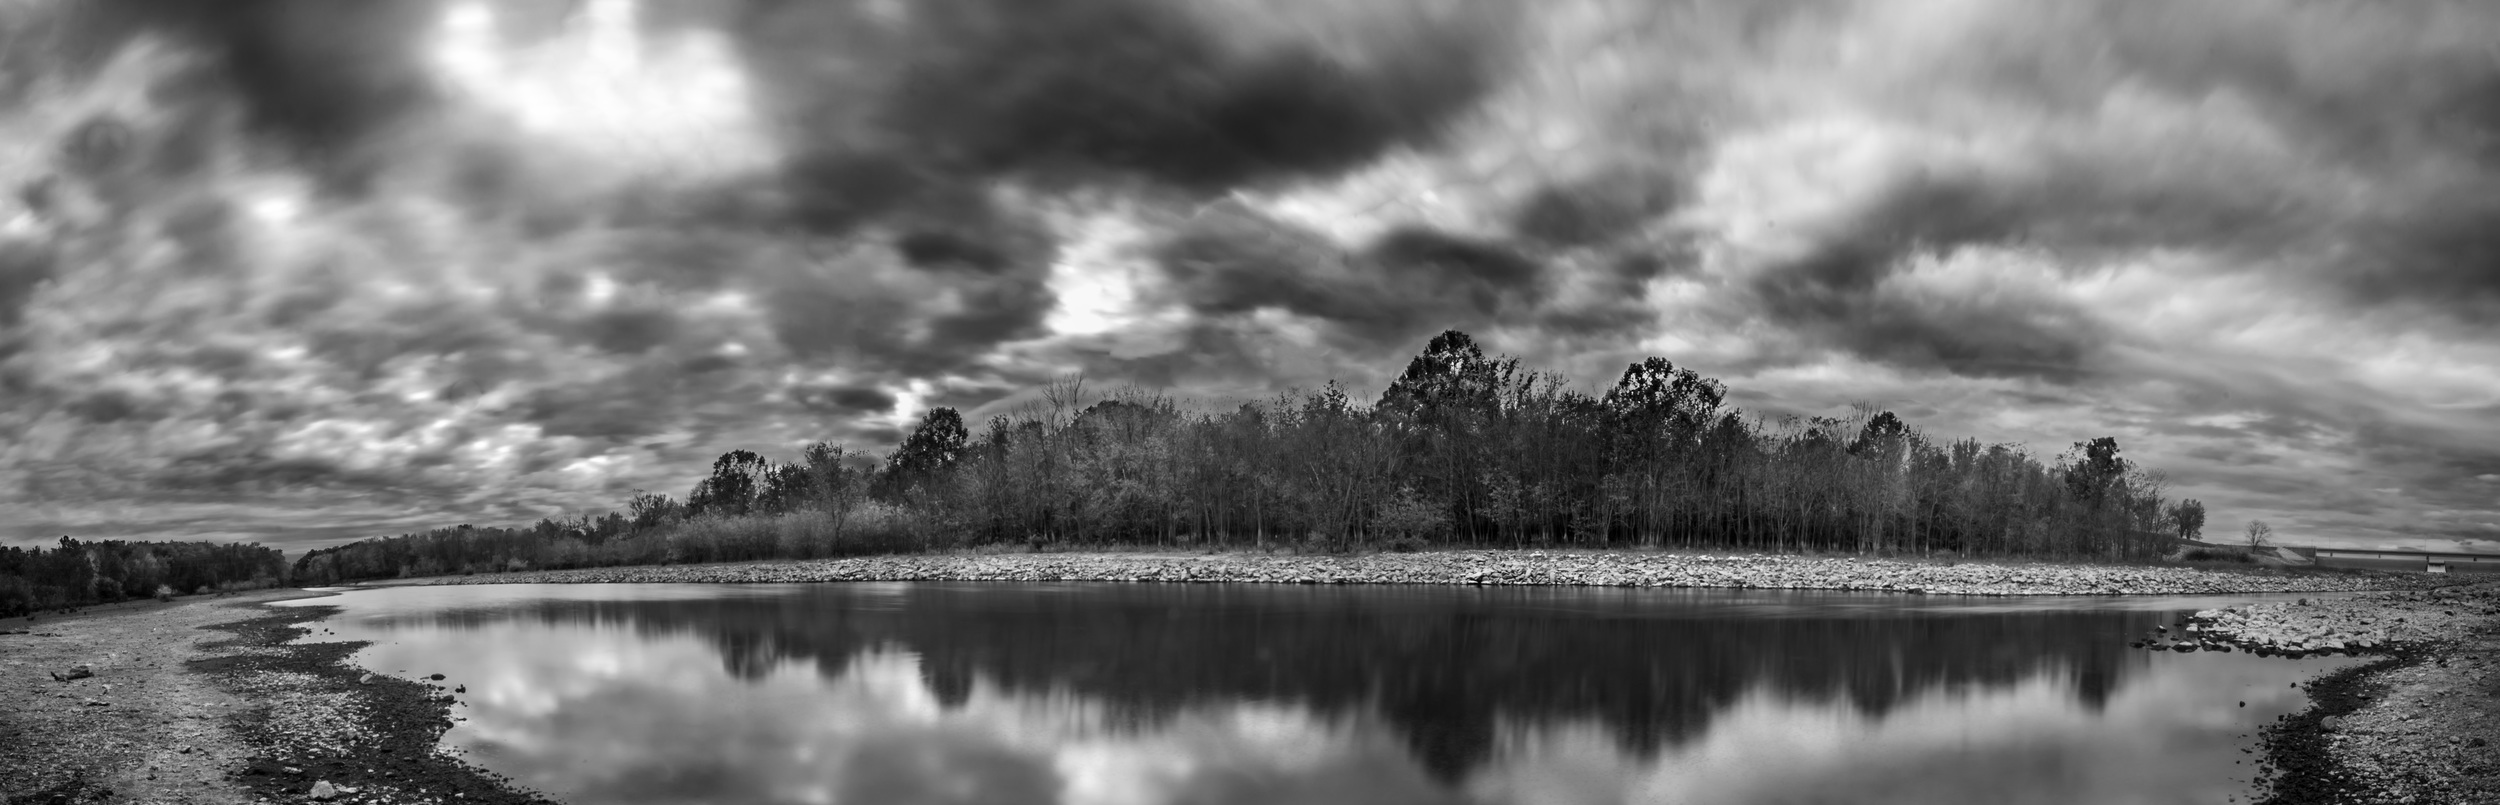 """4 Stitched Images,  Nikon D610 ,  T  okina 11-16 F2.8 @ 11m  m, IS0 50, F22, 13""""  exposure ND8x2"""